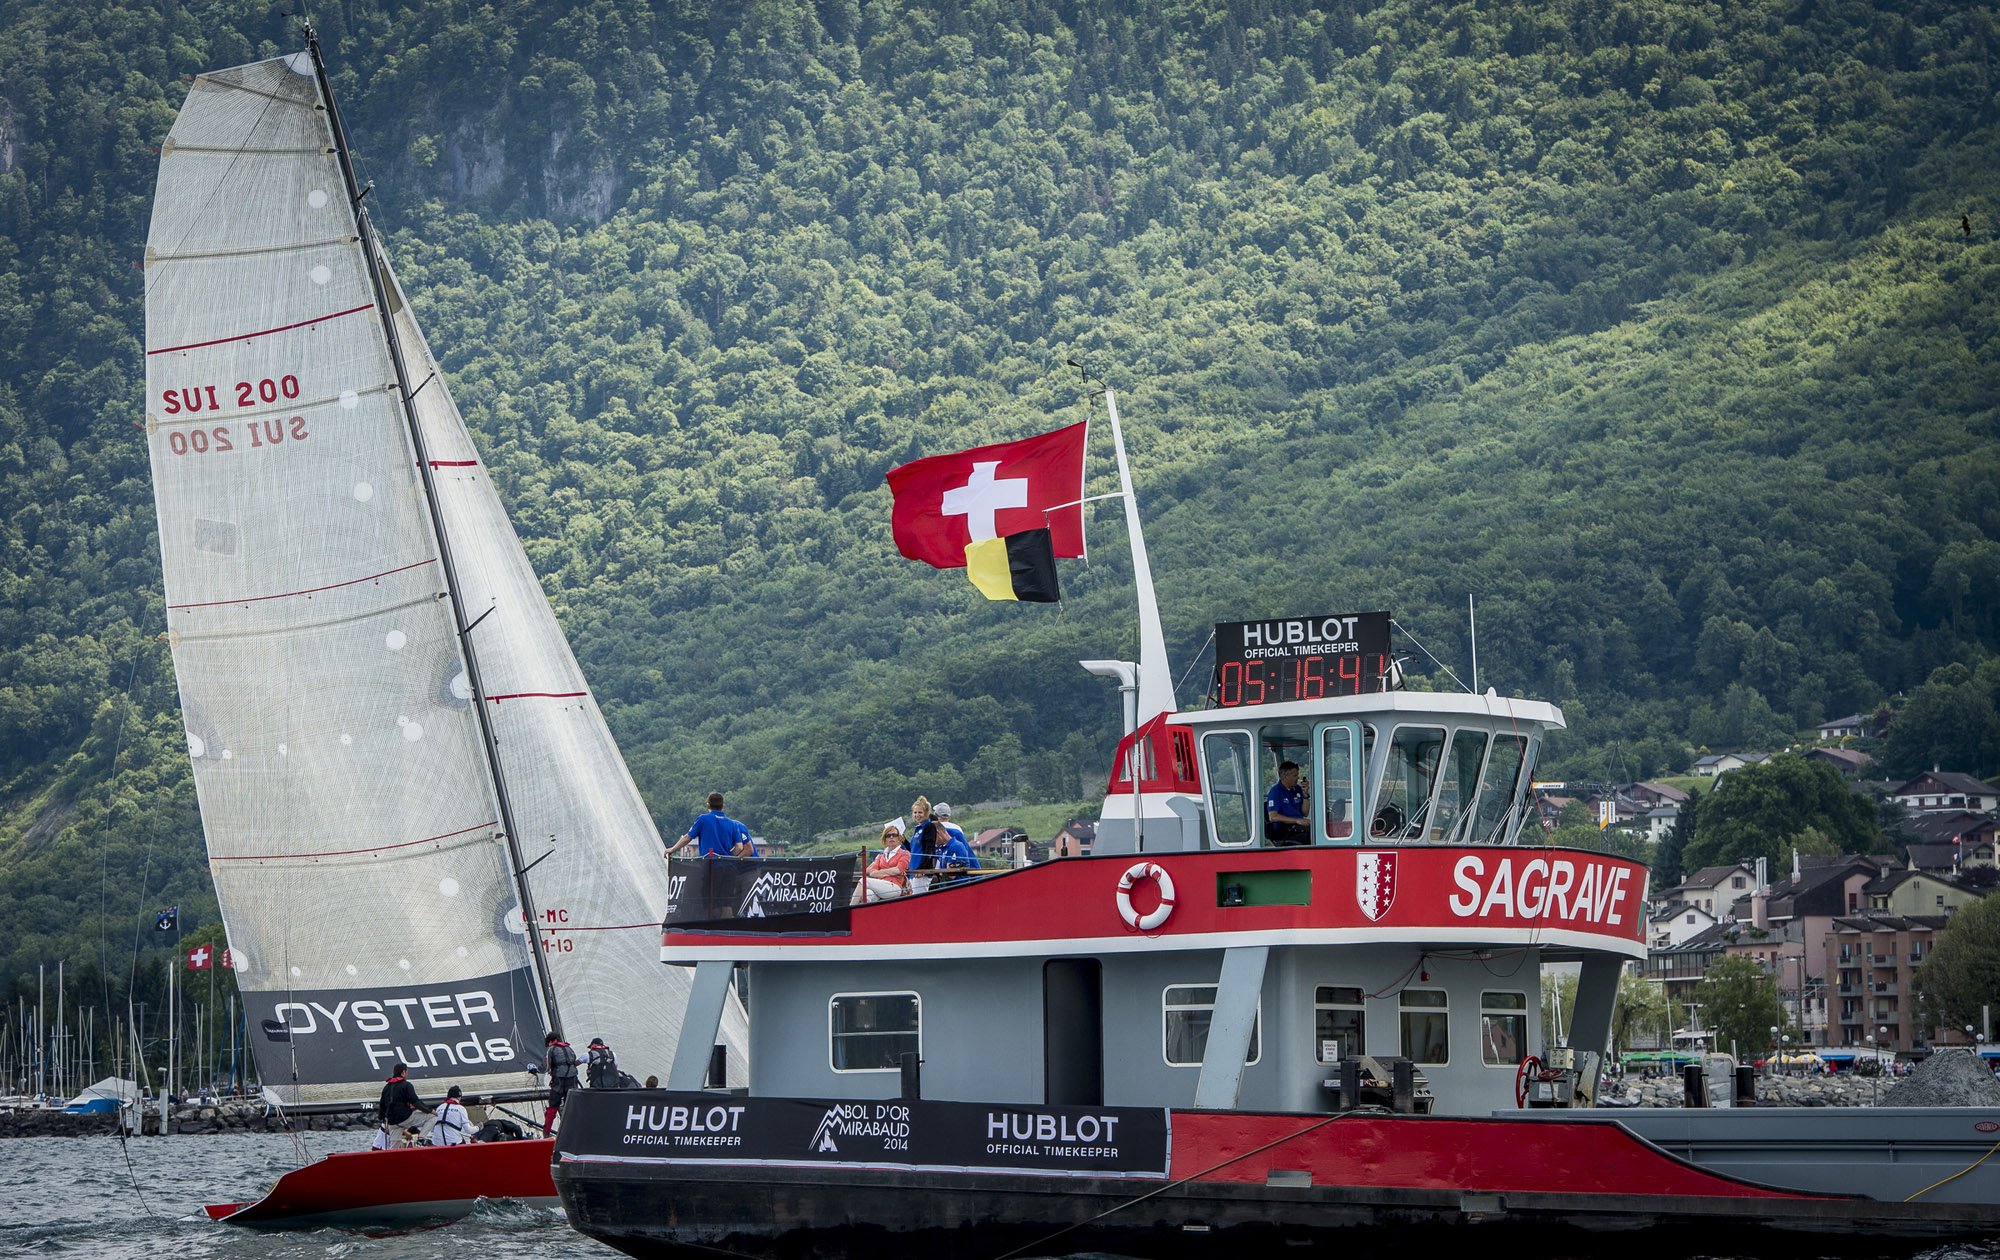 76th annual Bol d'Or Mirabaud regatta